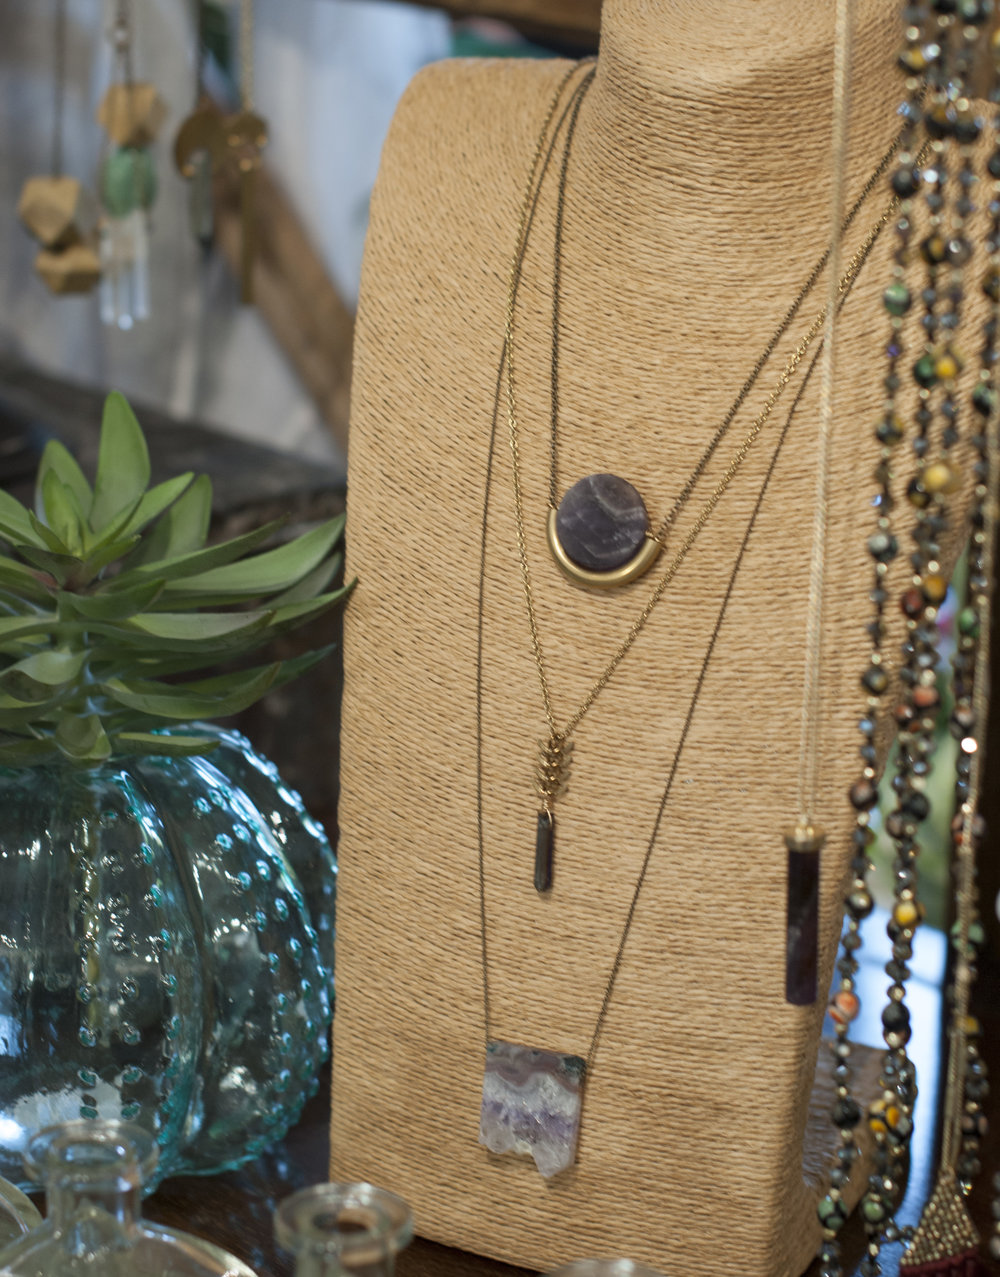 artisan made jewelry at the wardrobe